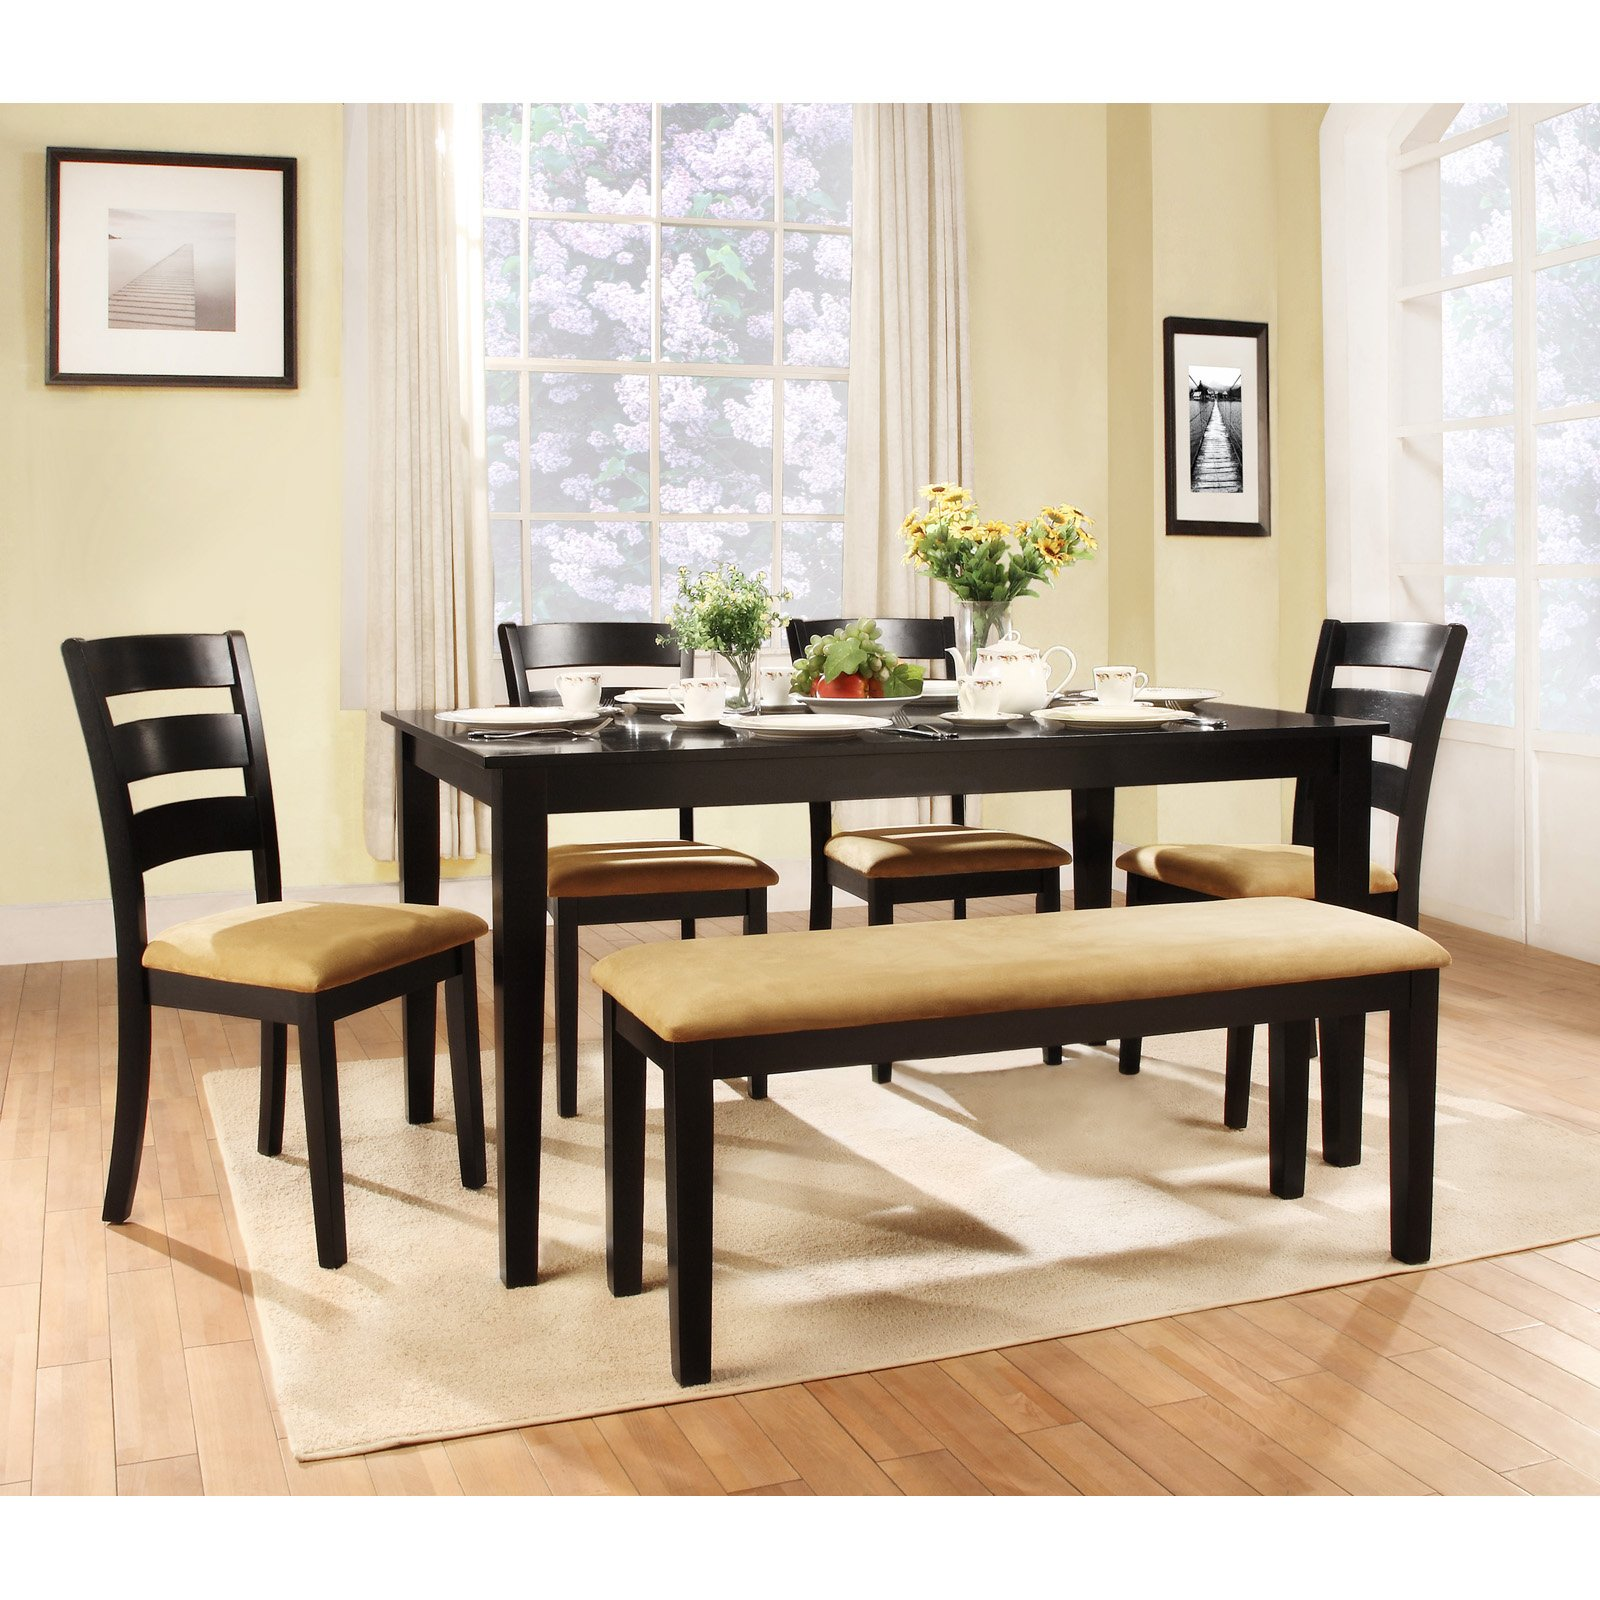 Modern bench style dining table set ideas homesfeed for Designer dinette sets